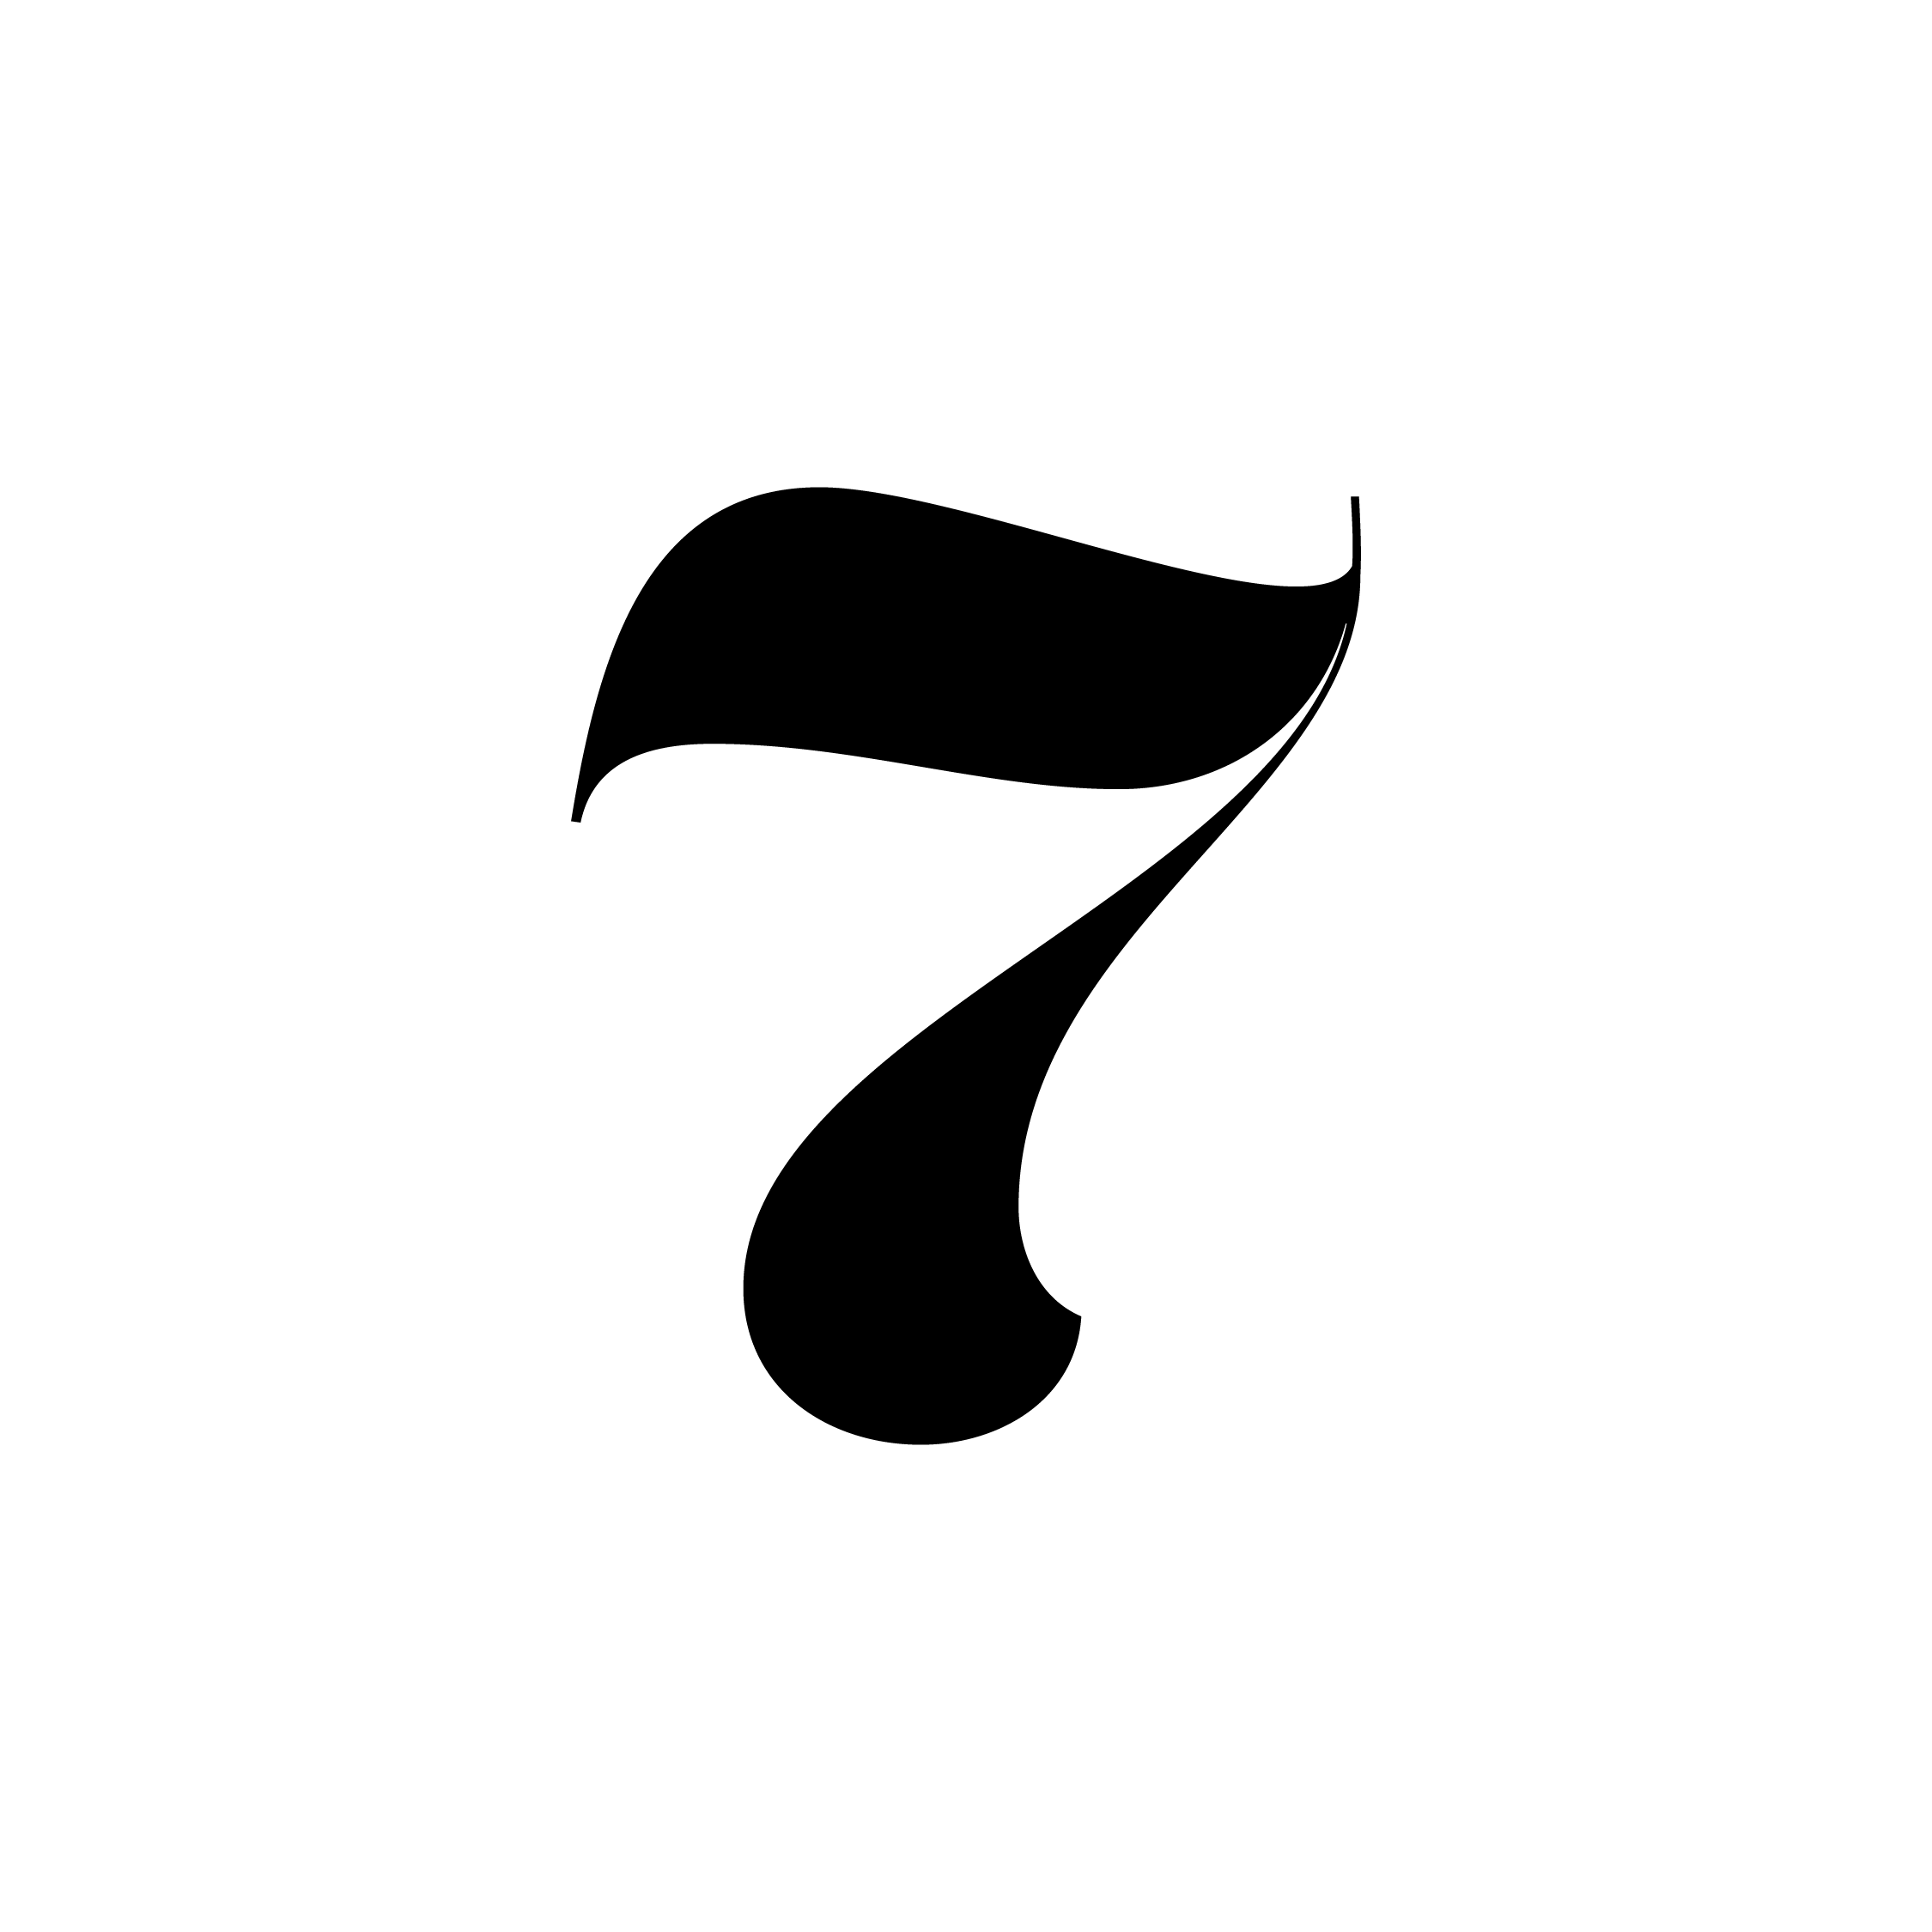 Numbers-07.png